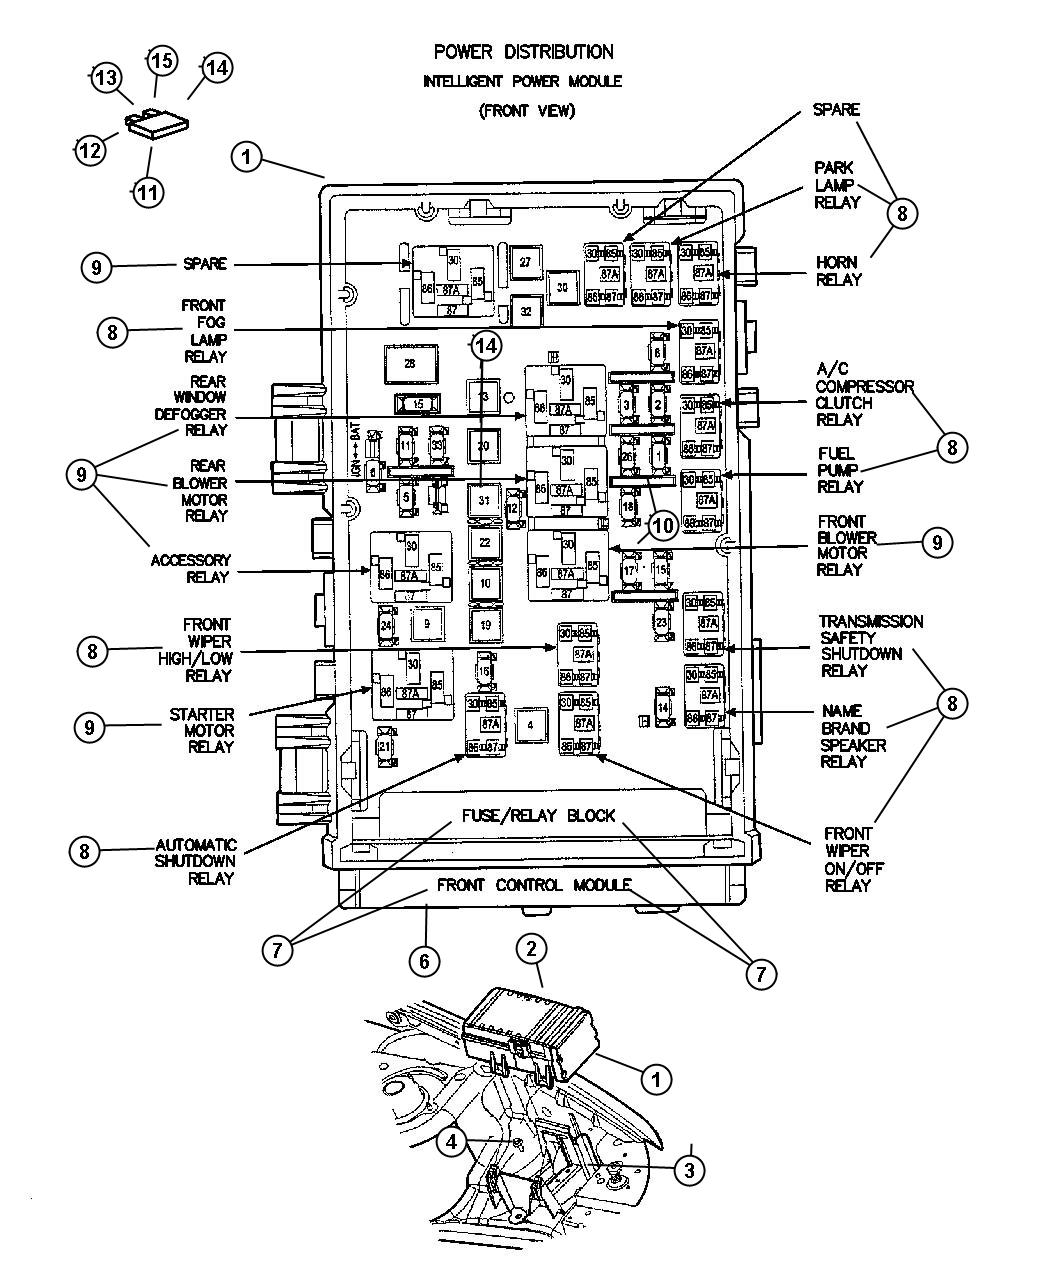 Chrysler Town Amp Country Module Power Distribution With